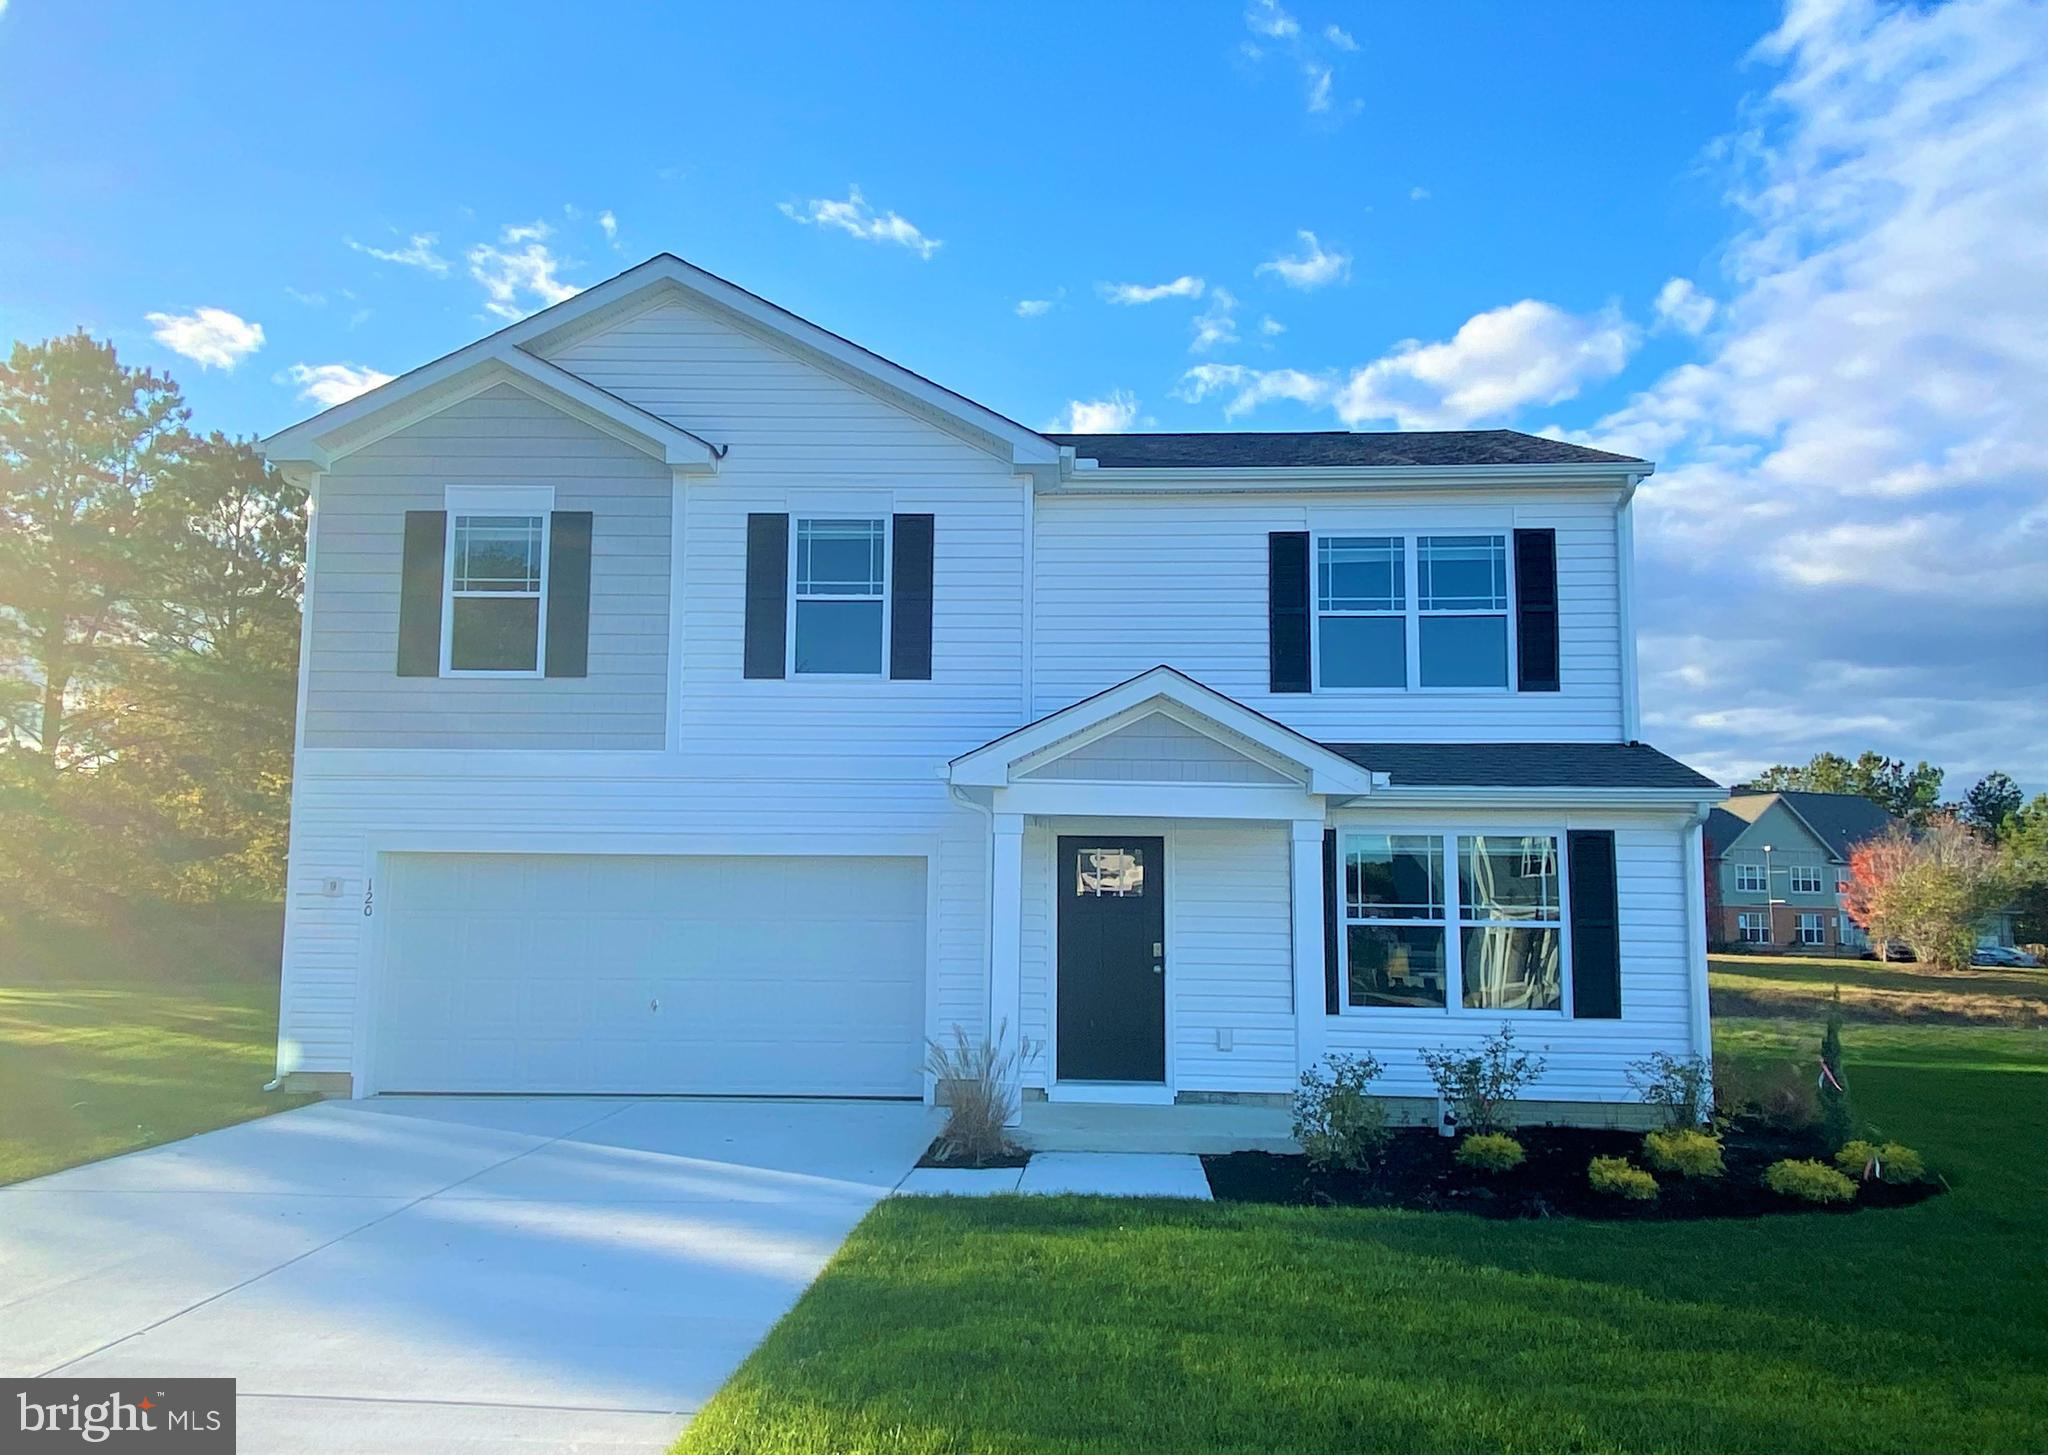 The Glendale is a 1,649 square foot, open concept two-story home that offers four bedrooms, two and